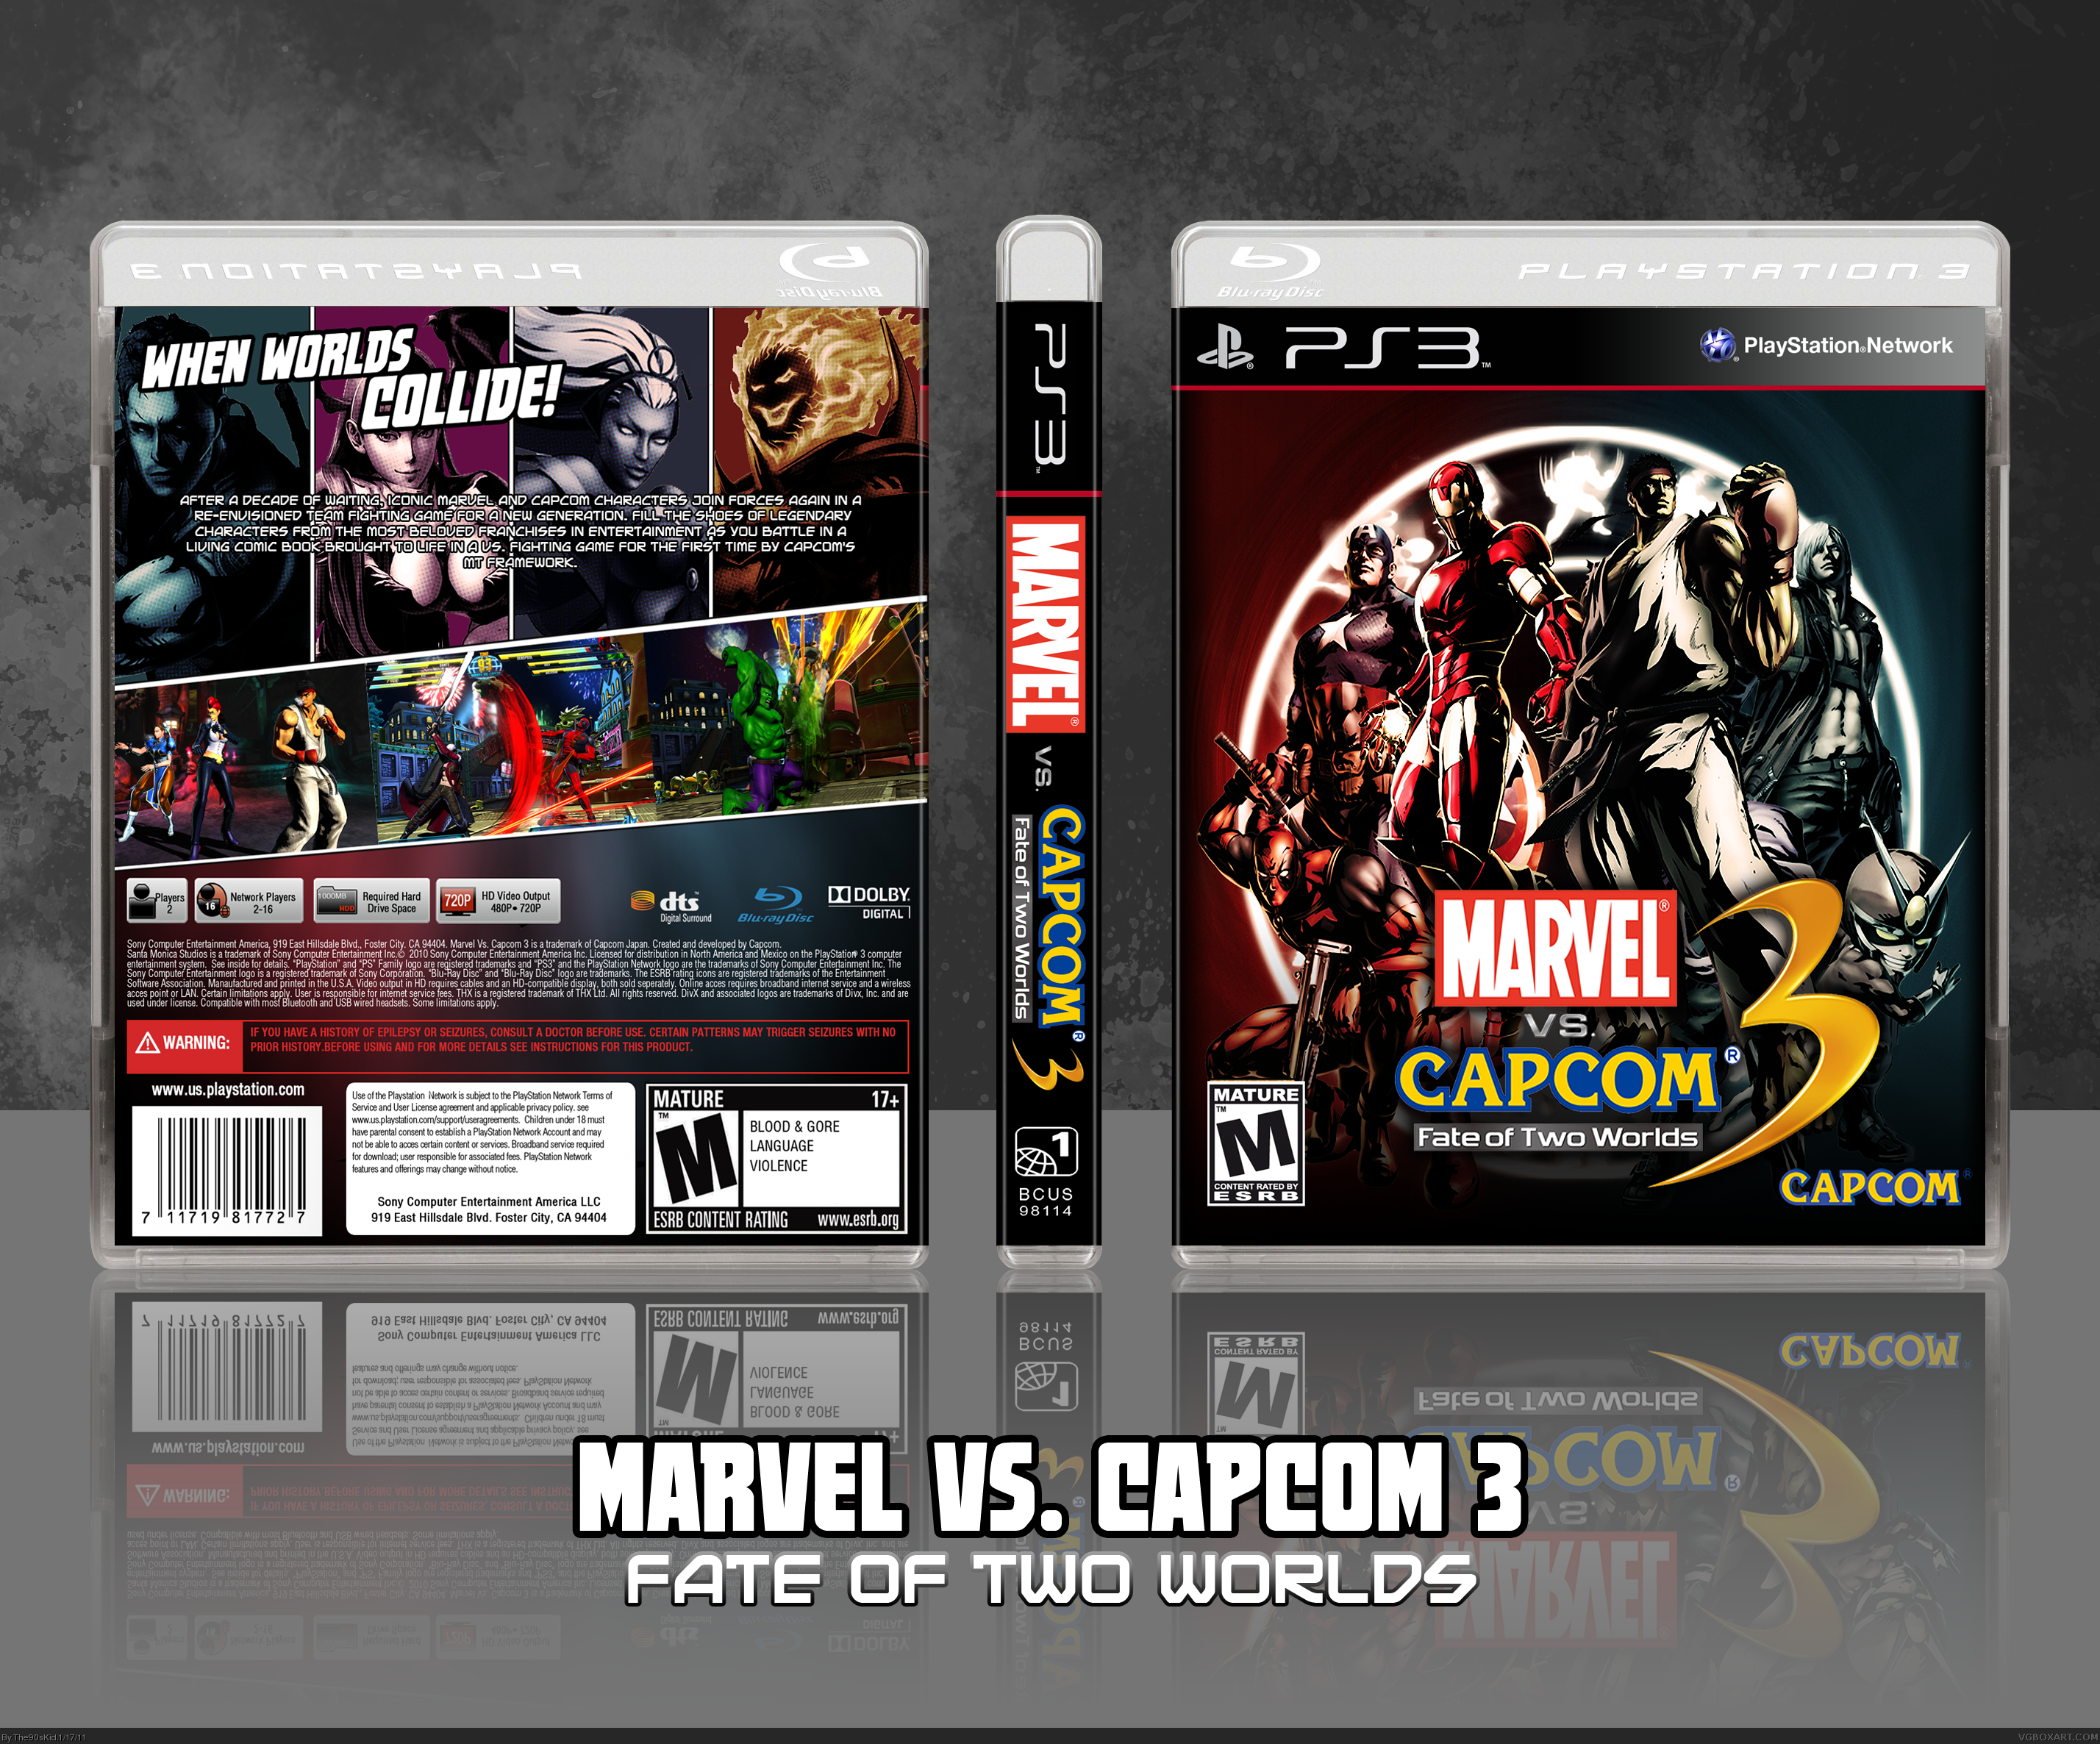 Marvel Vs. Capcom 3: Fate of Two Worlds box cover